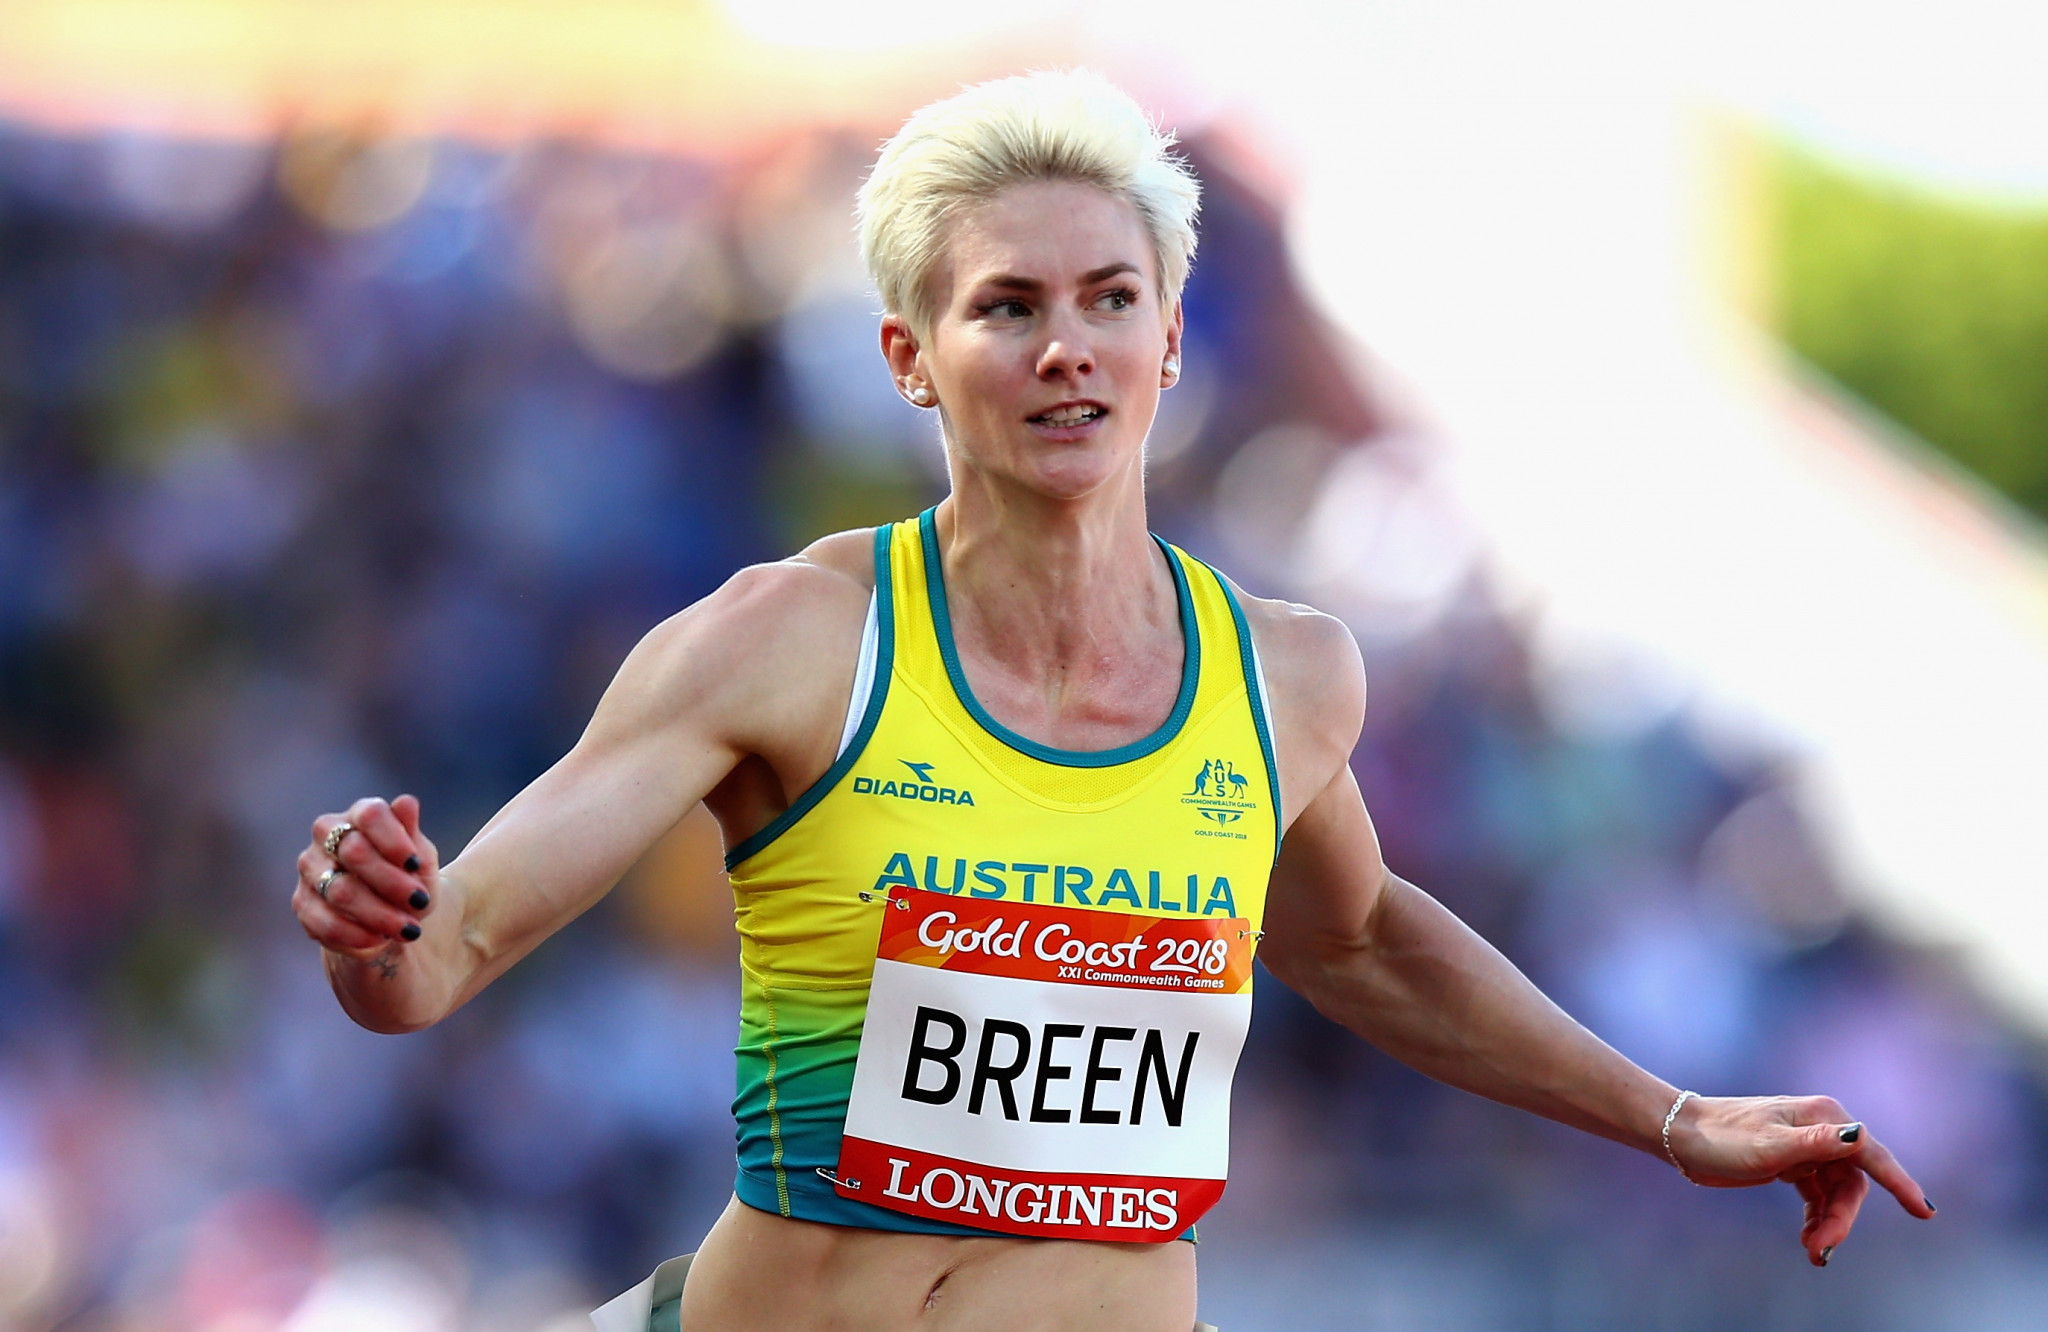 A group of 42 athletes, including Olympians and Commonwealth Games participants, such as sprinter Melissa Breen have been announced in the Australia team for the Samoa 2019 Pacific Games ©Getty Images